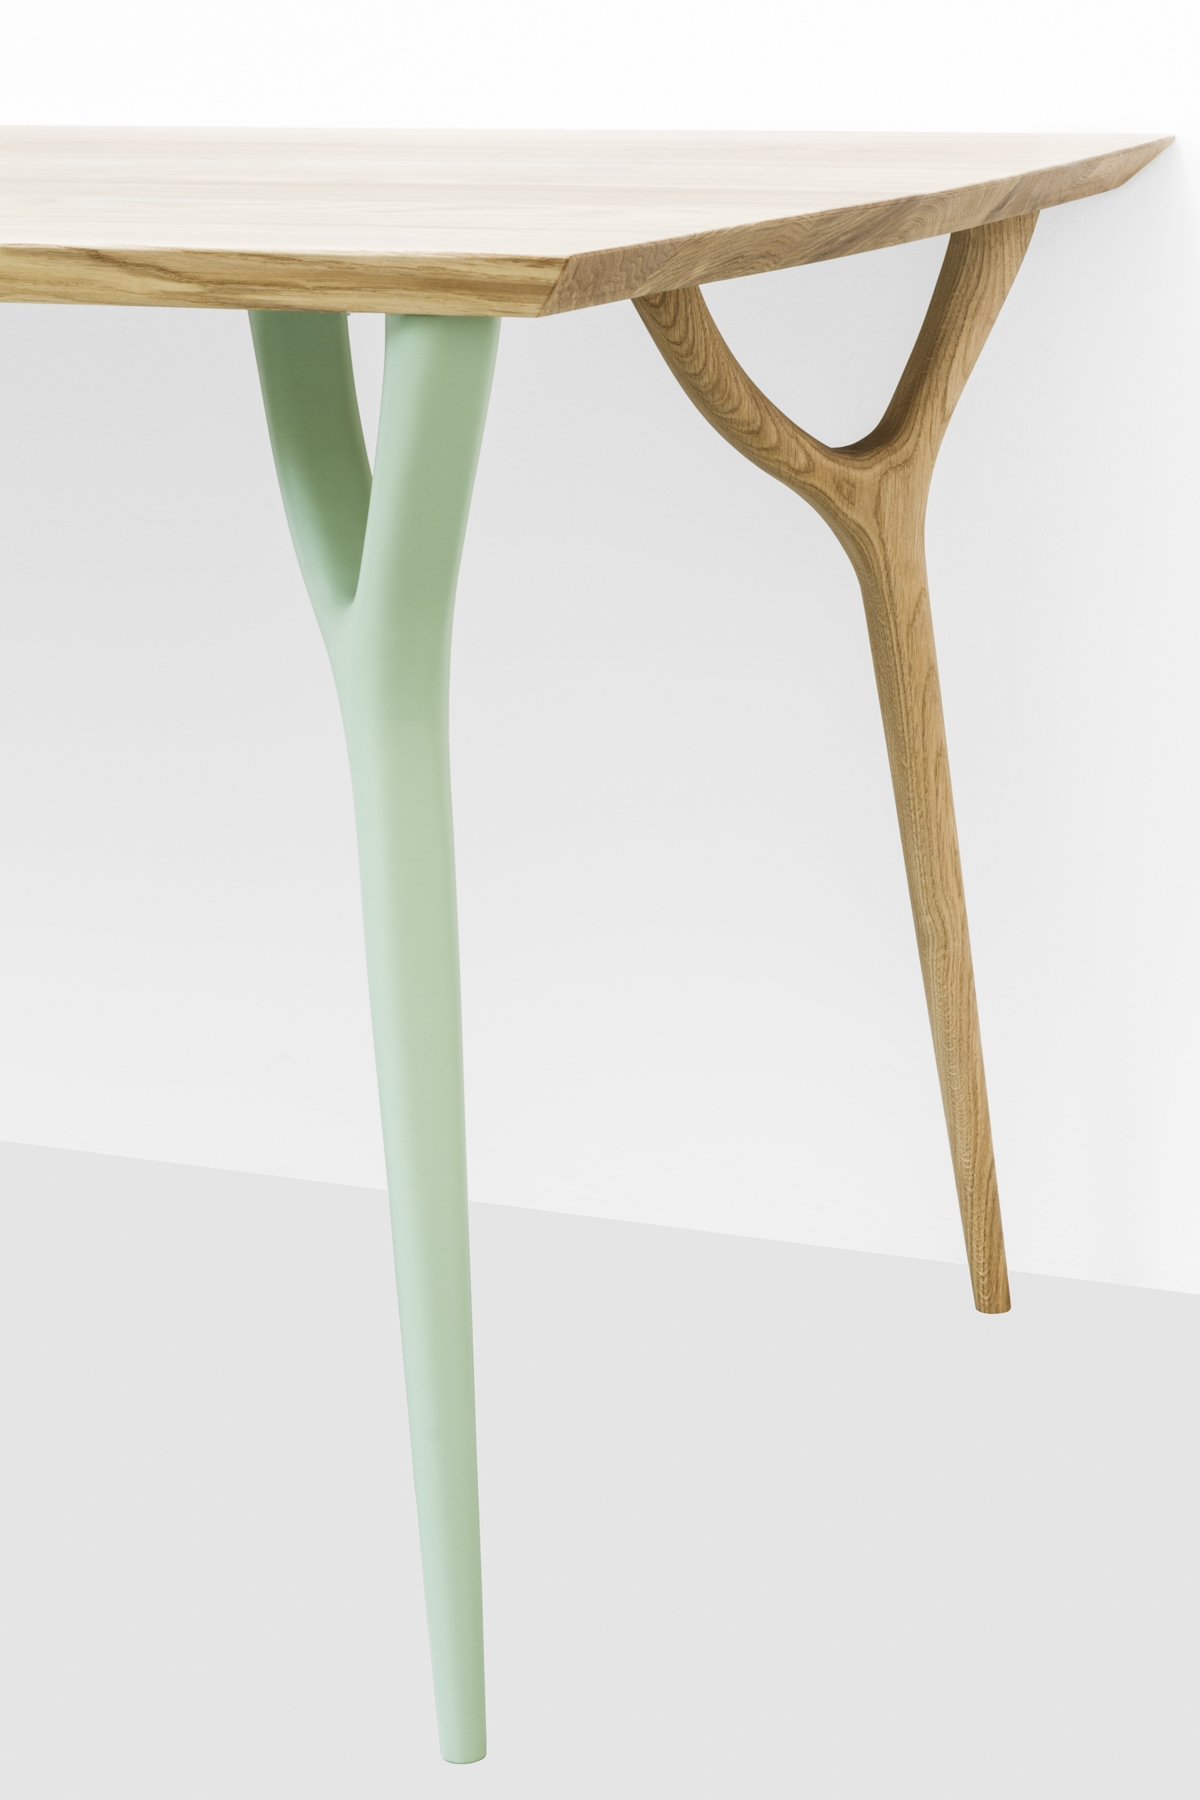 Vegetable collection design Vito Nesta per Cadriano 03